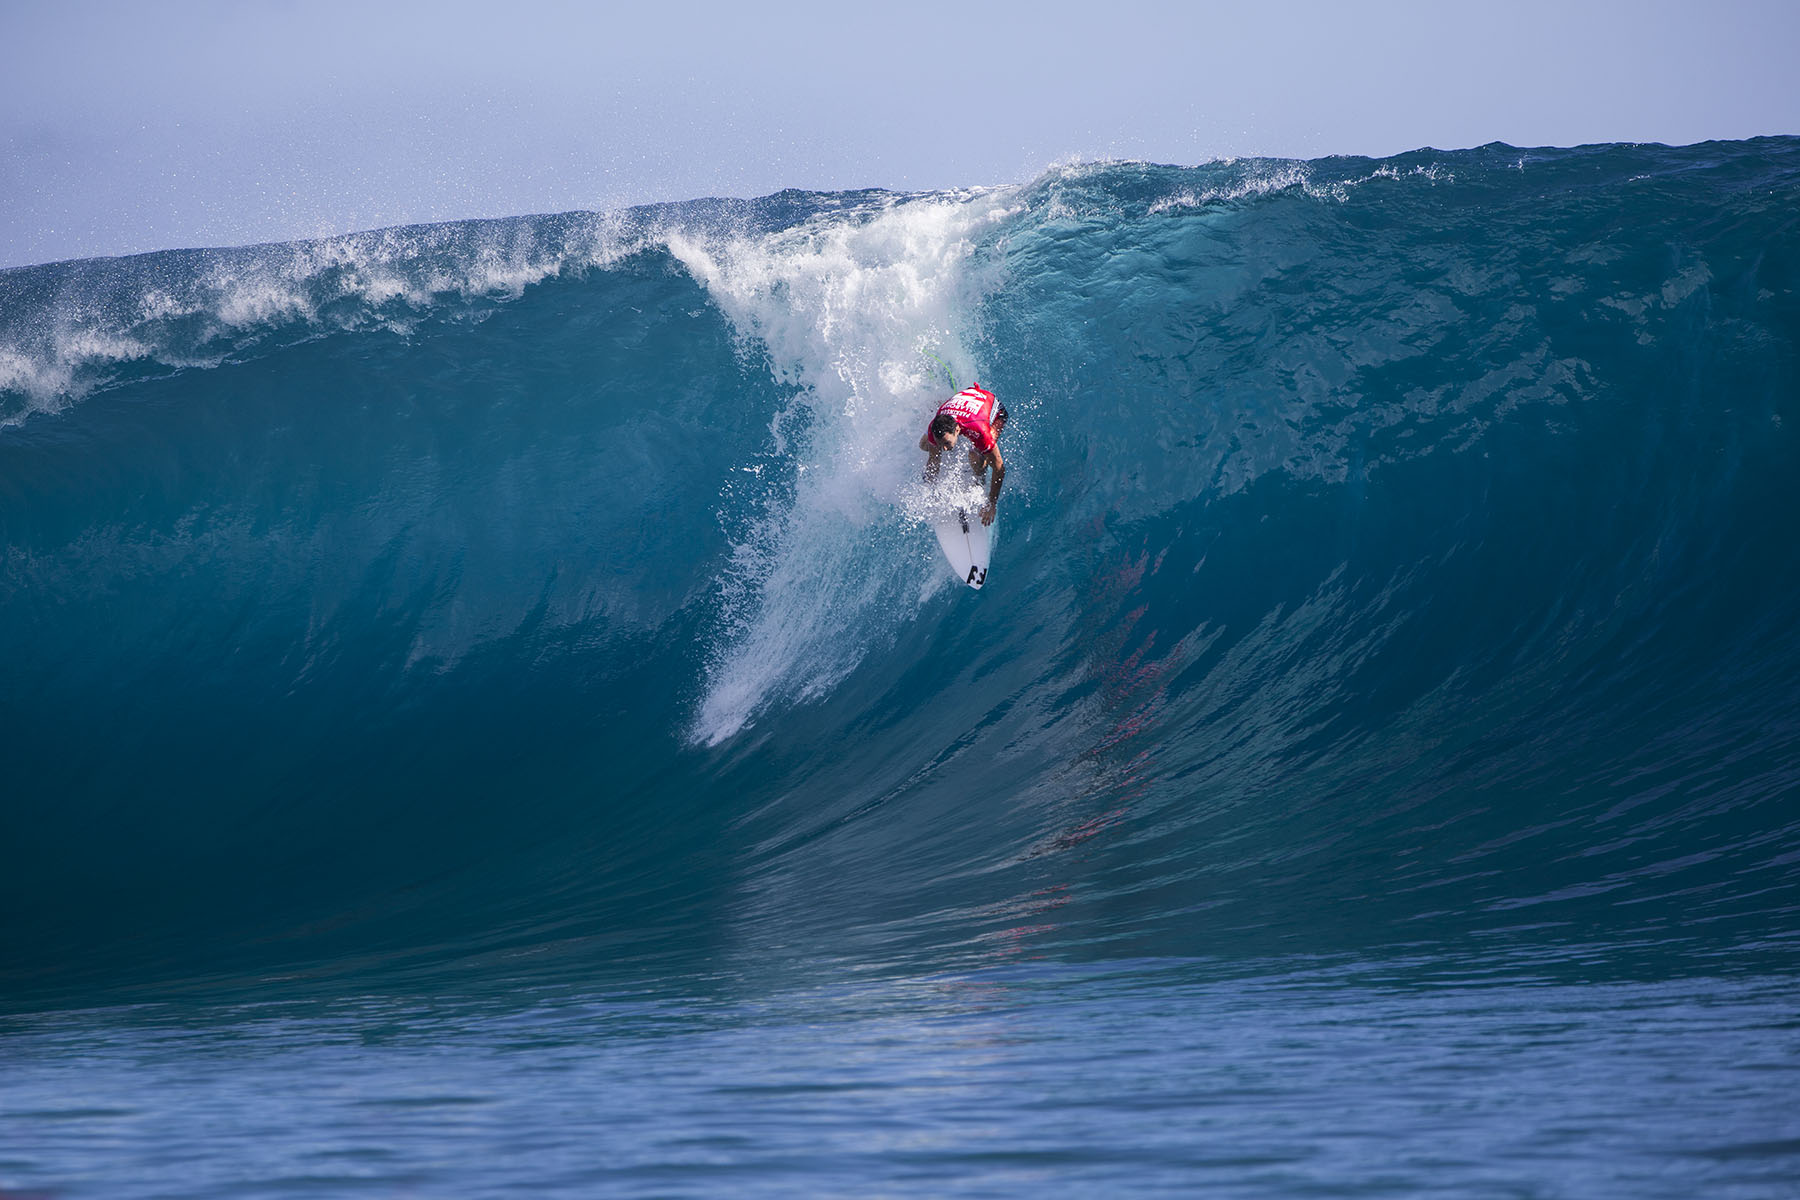 The Teahupo'o waves are famous for the Tahiti Pro Surf competition.